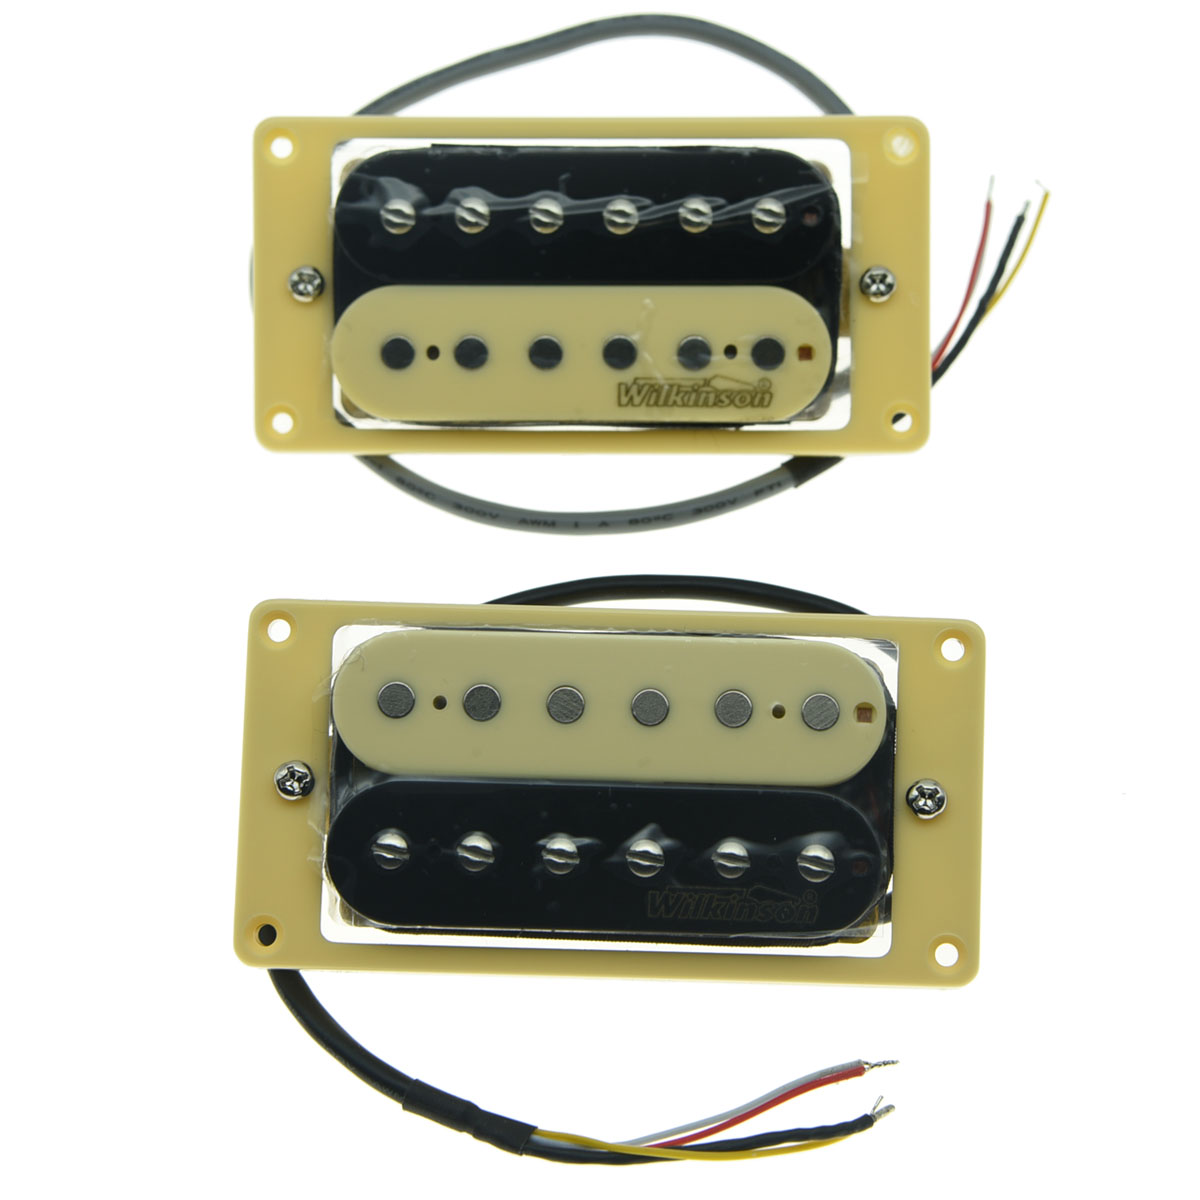 KAISH Set of 2 Wilkinson Lic Zebra Humbucker Pickups with Cream Pickup Frame High Quality fundamentals of physics extended 9th edition international student version with wileyplus set